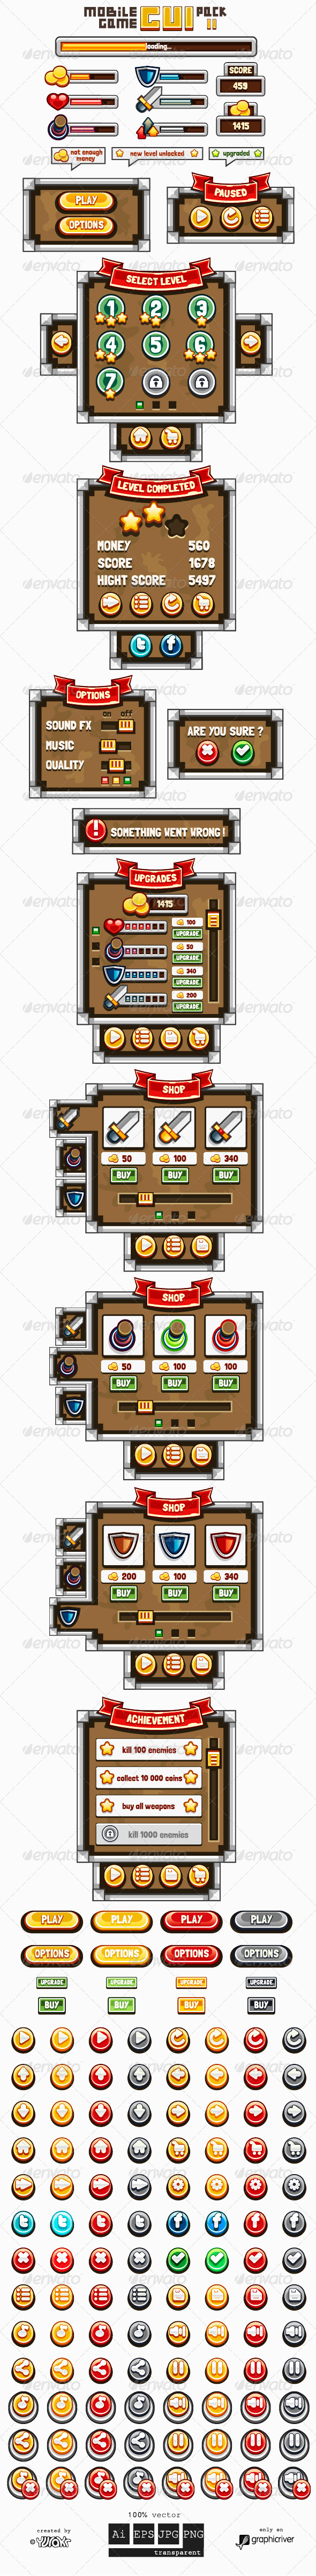 GraphicRiver Mobile Game GUI Pack 2 7010530